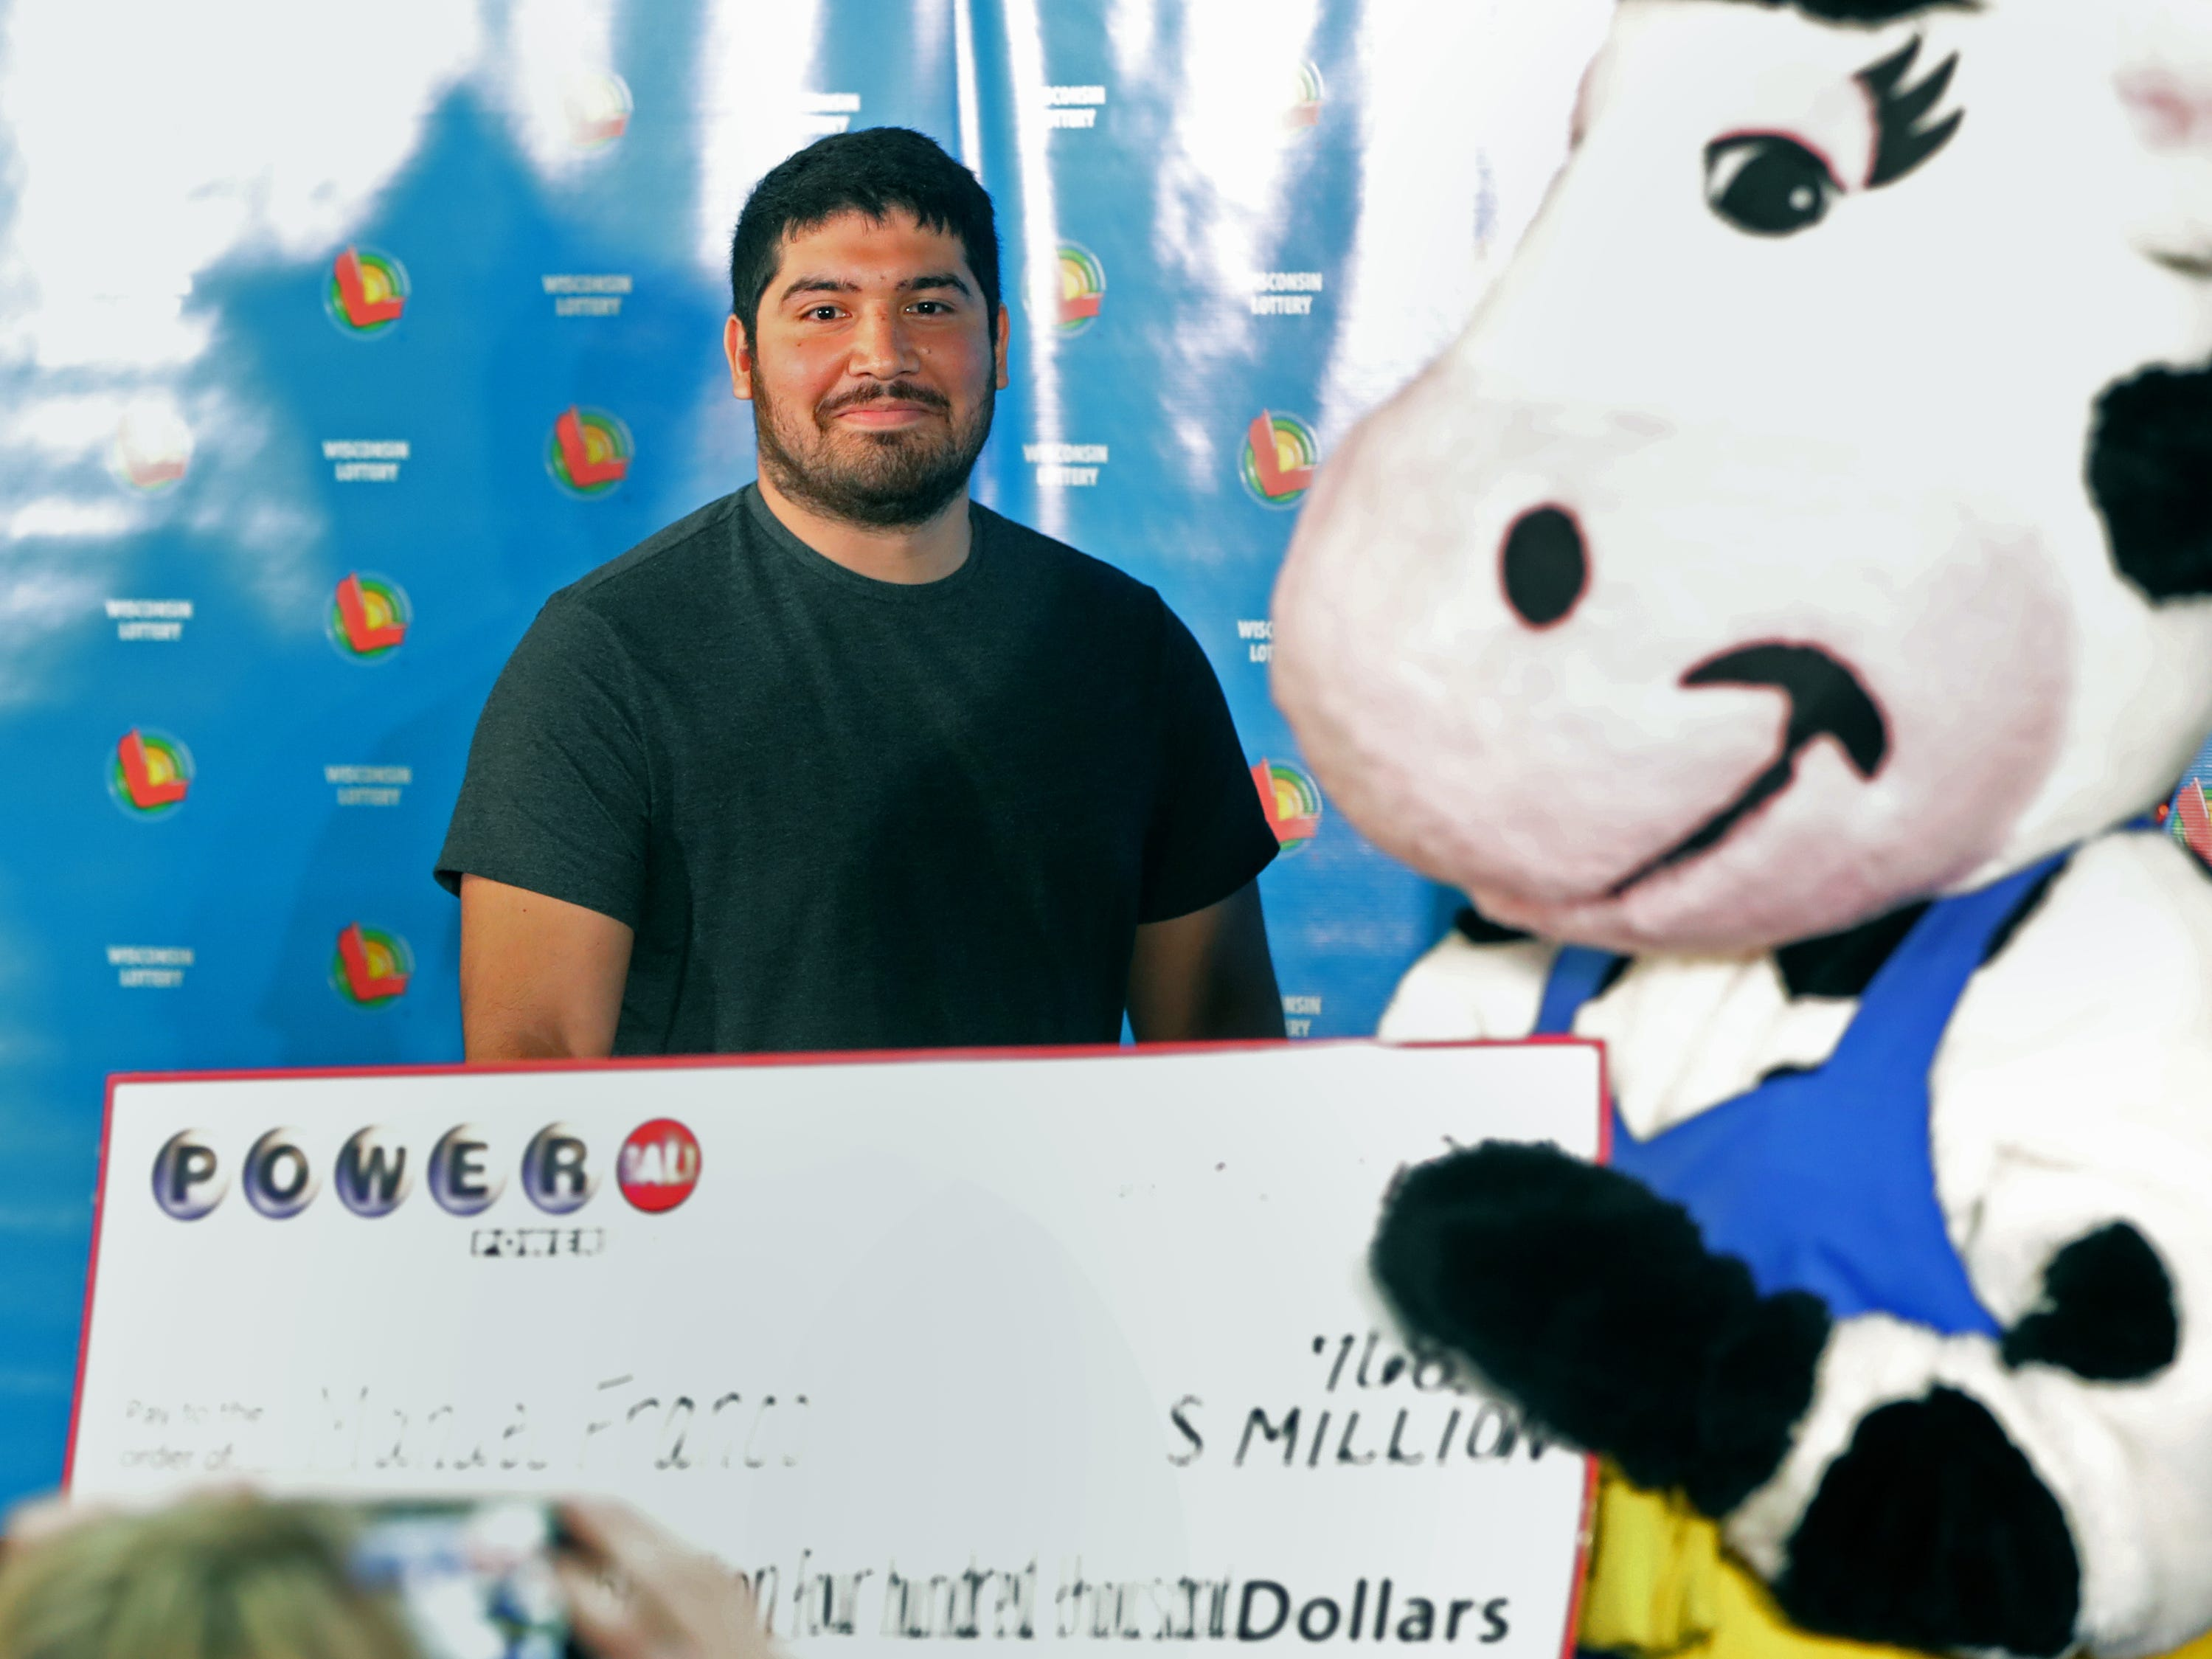 Manuel Franco, who purchased the $768.4 million Powerball ticket sold last month in New Berlin, appears at a news conference Tuesday, April 23, 2019 at the Wisconsin Lottery's offices in Madison, Wis. It was the largest jackpot in the Wisconsin lottery's history and the third-largest lottery prize in U.S. history. The lump sum payout is $477 million.